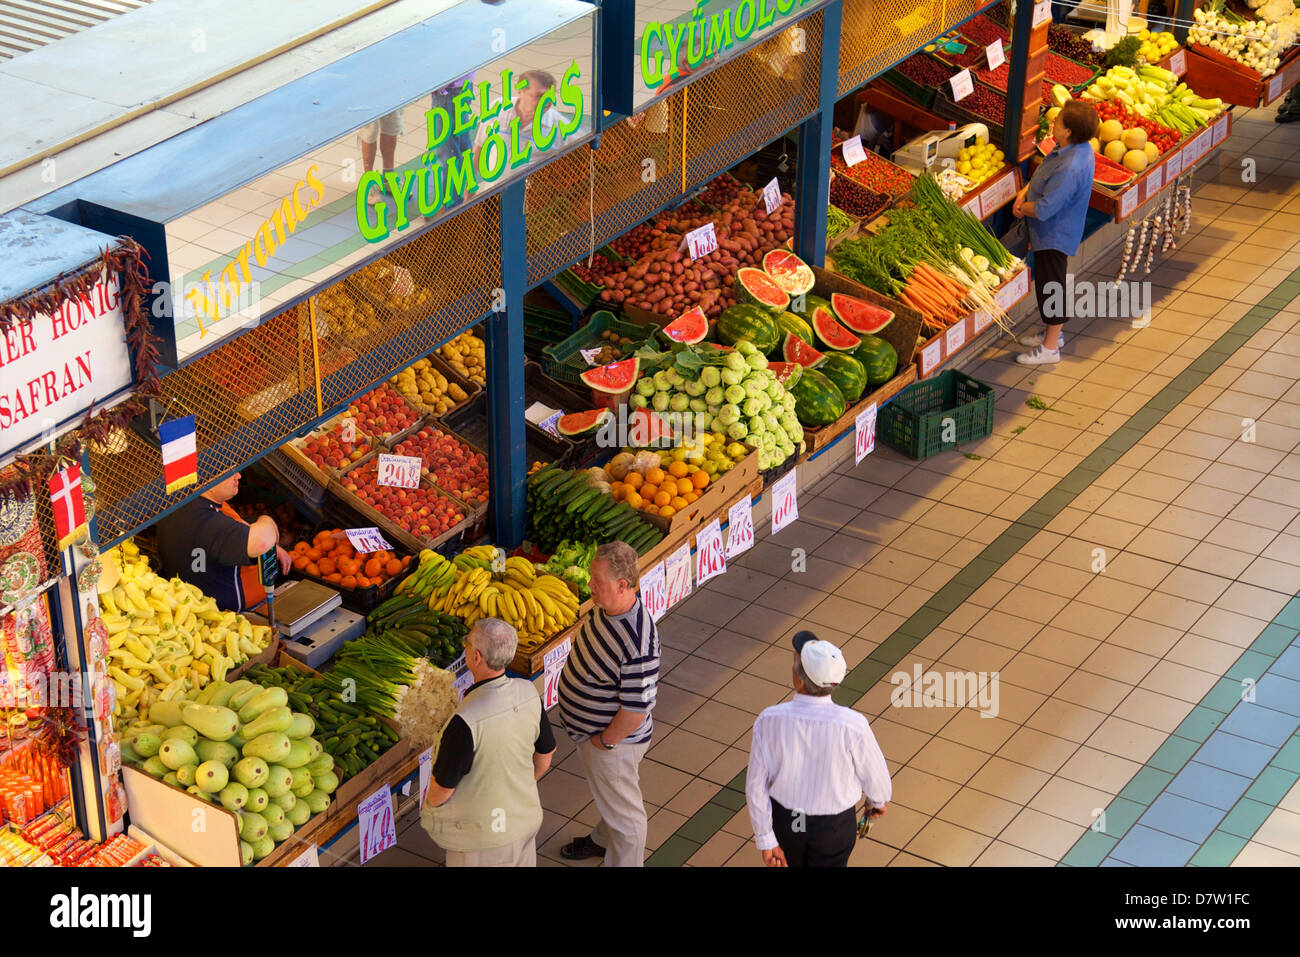 Central Market Hall, Budapest, Hungary - Stock Image